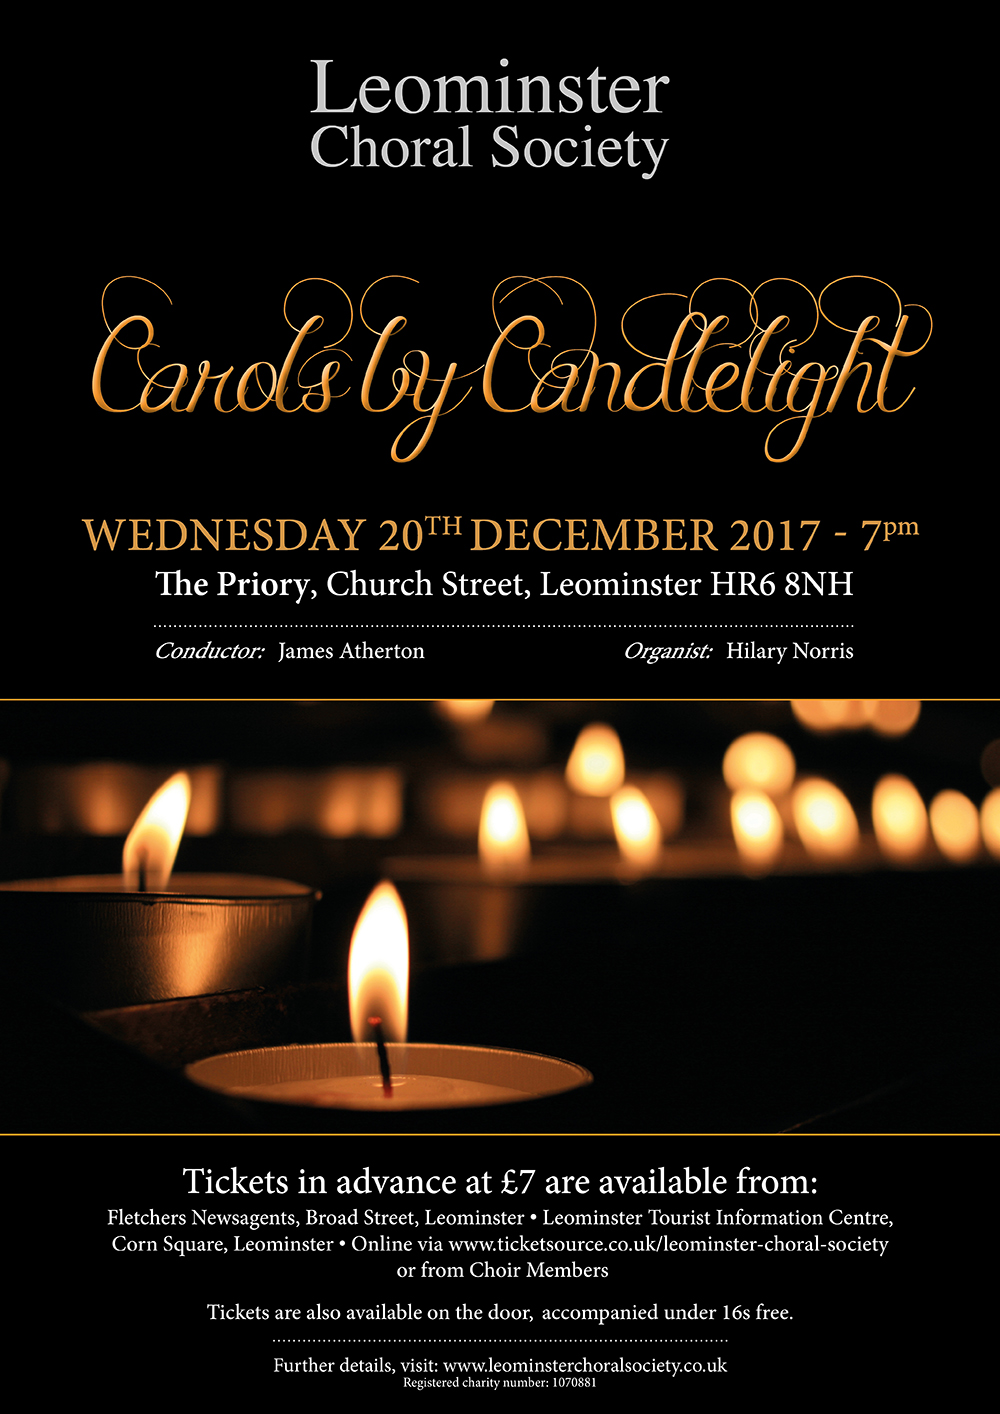 Carols by Candlelight in Leominster Priory